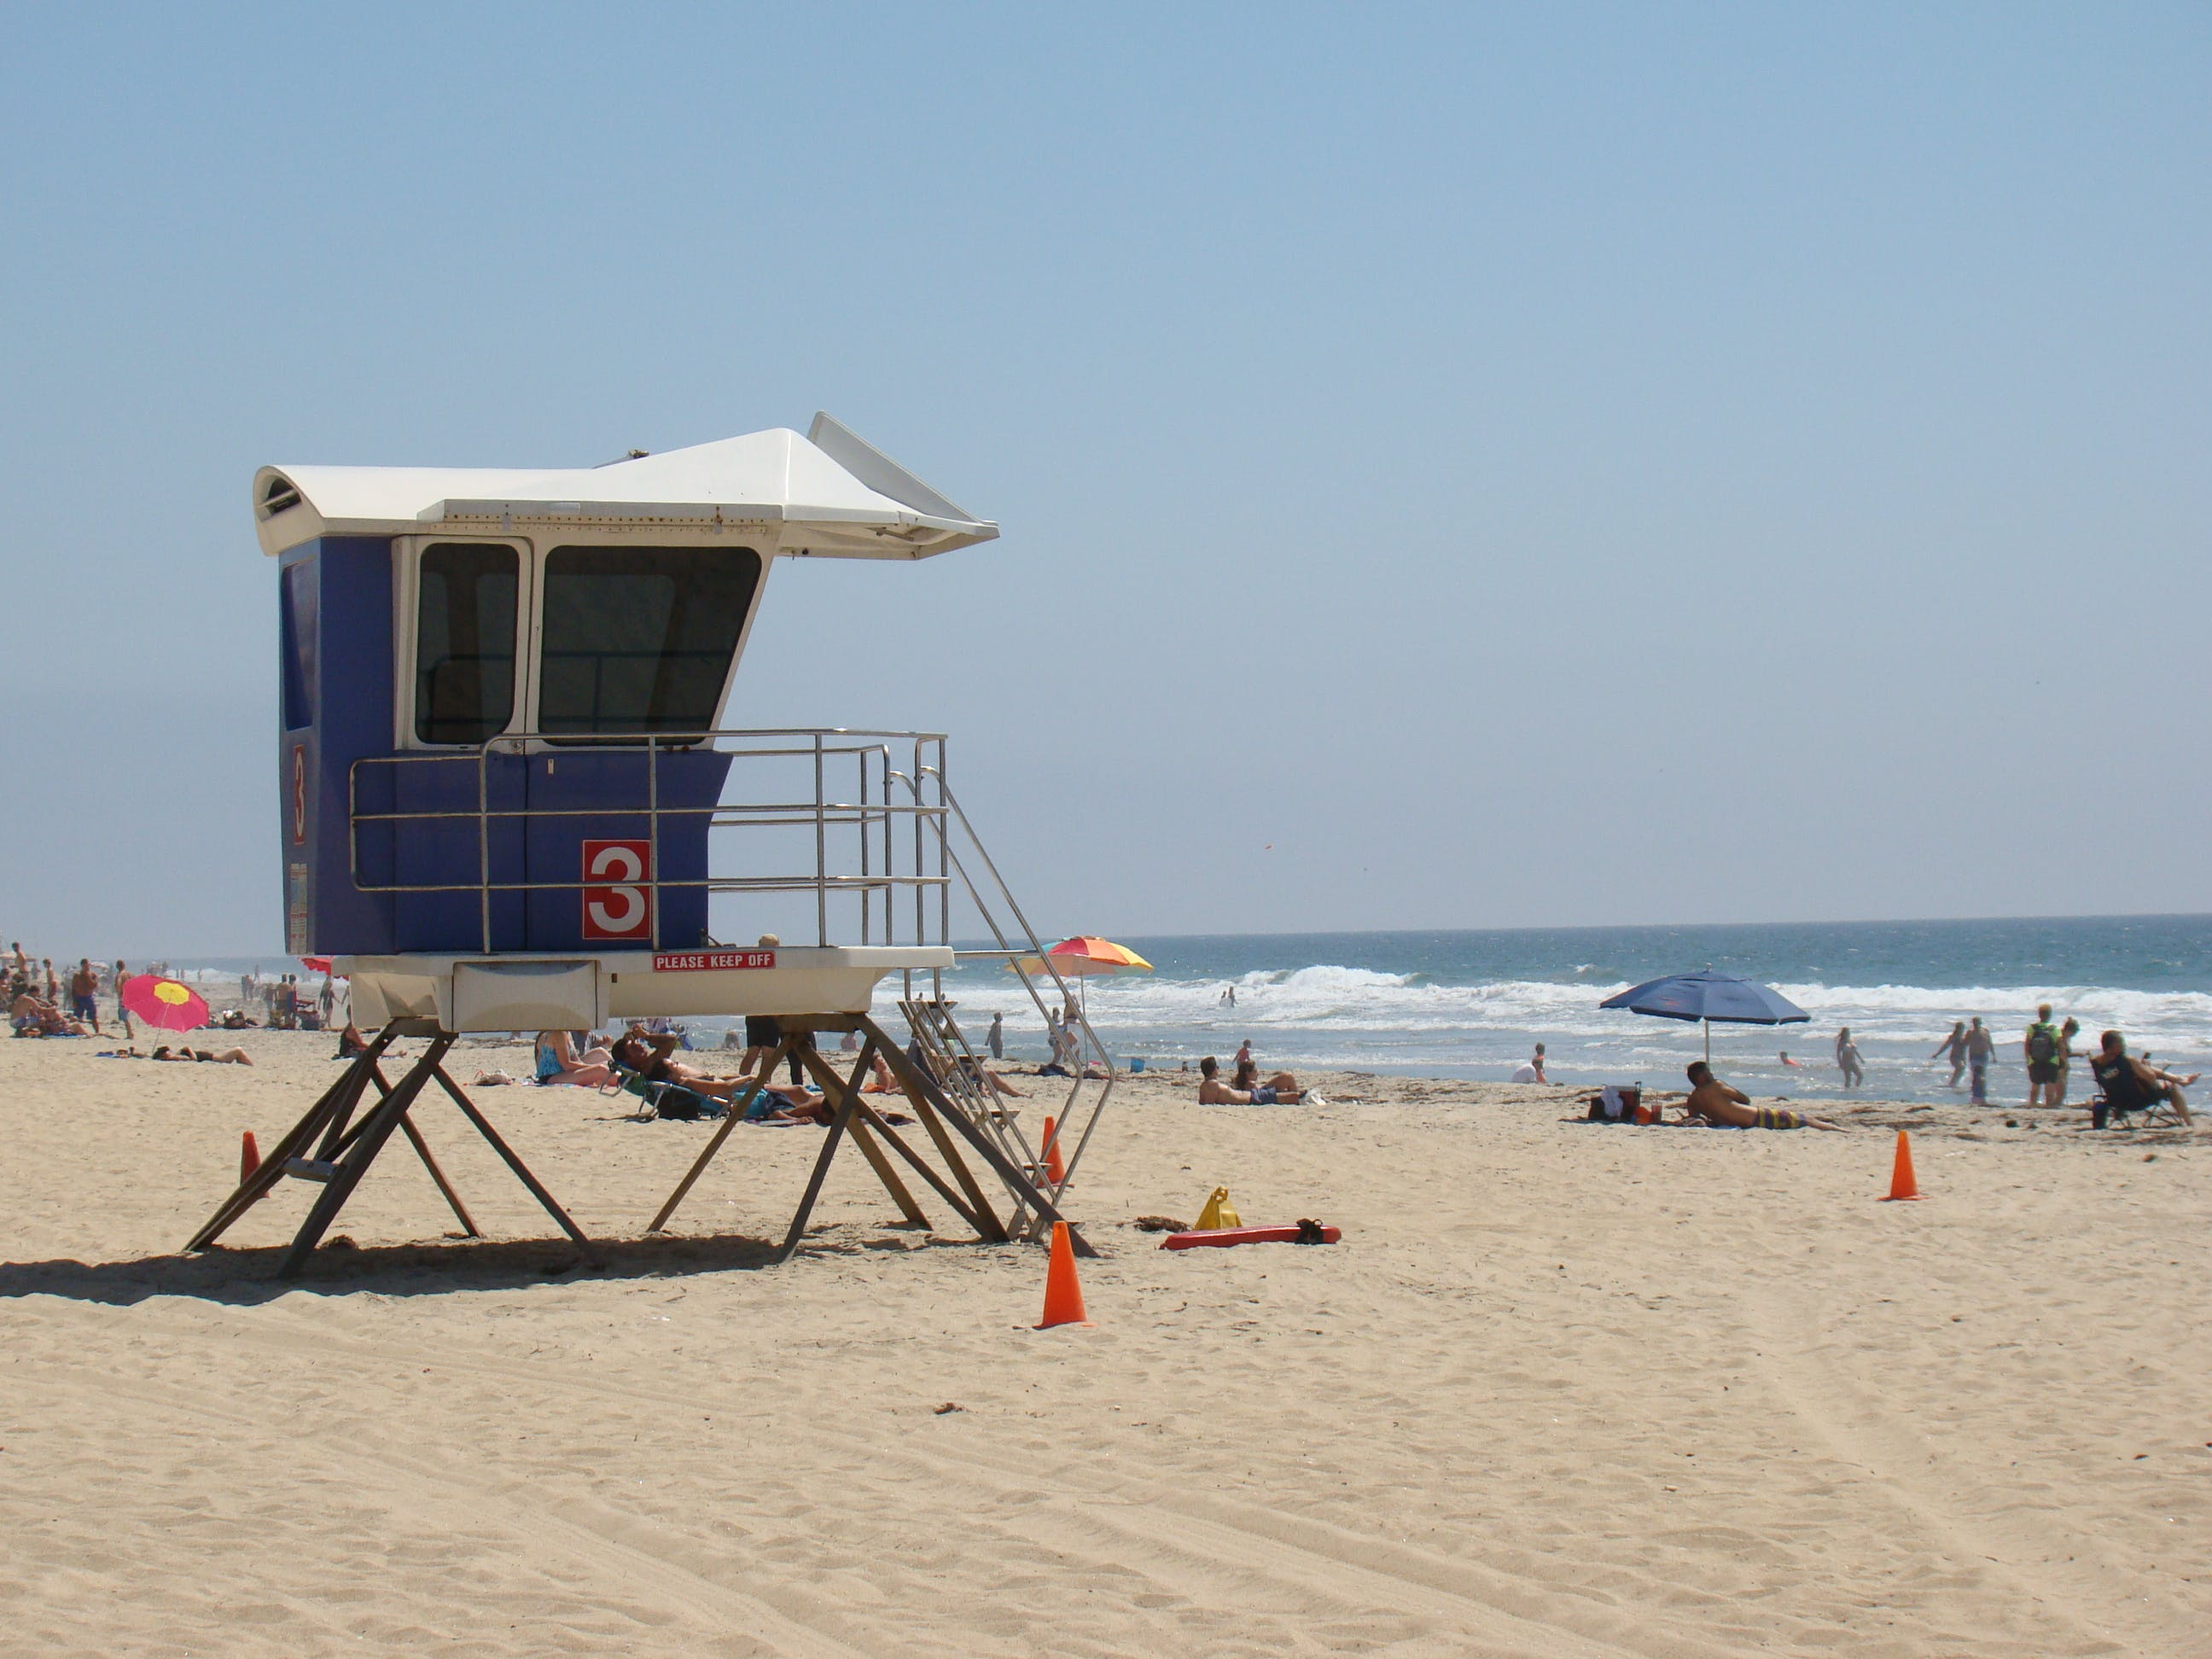 Blue and Gray Guardhouse on Beach